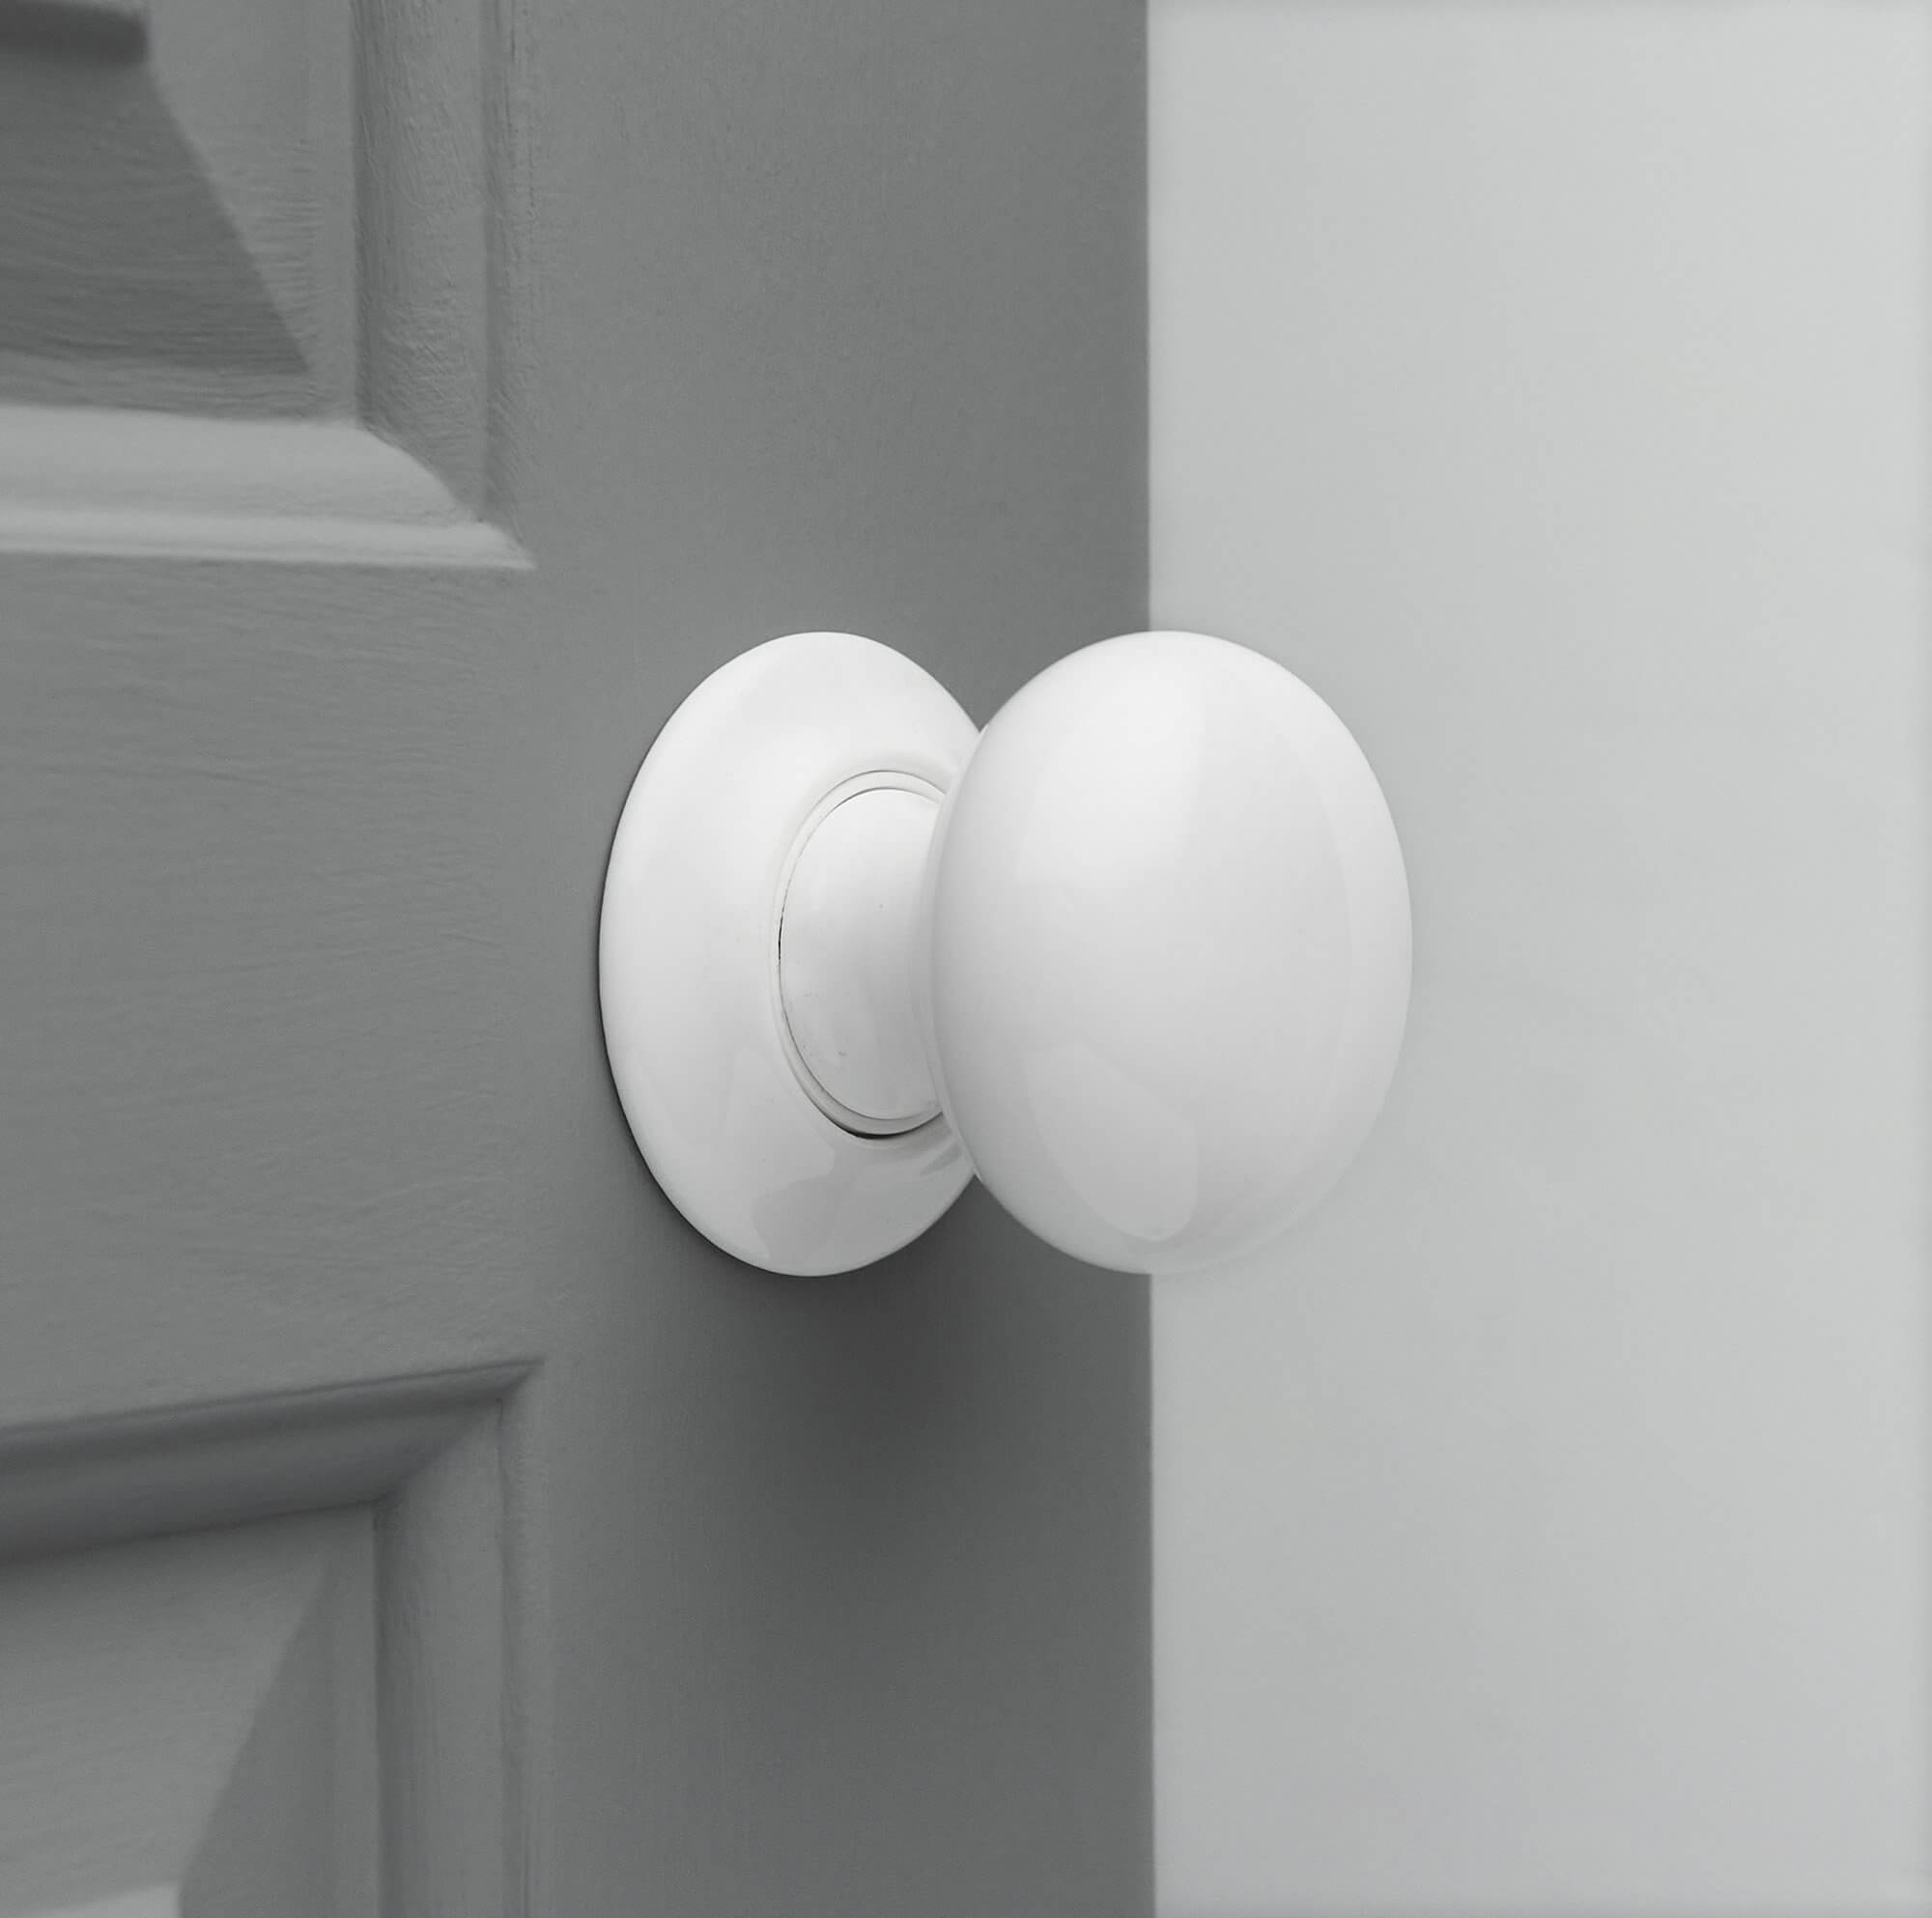 Porcelain Door Knobs (Pair) - White